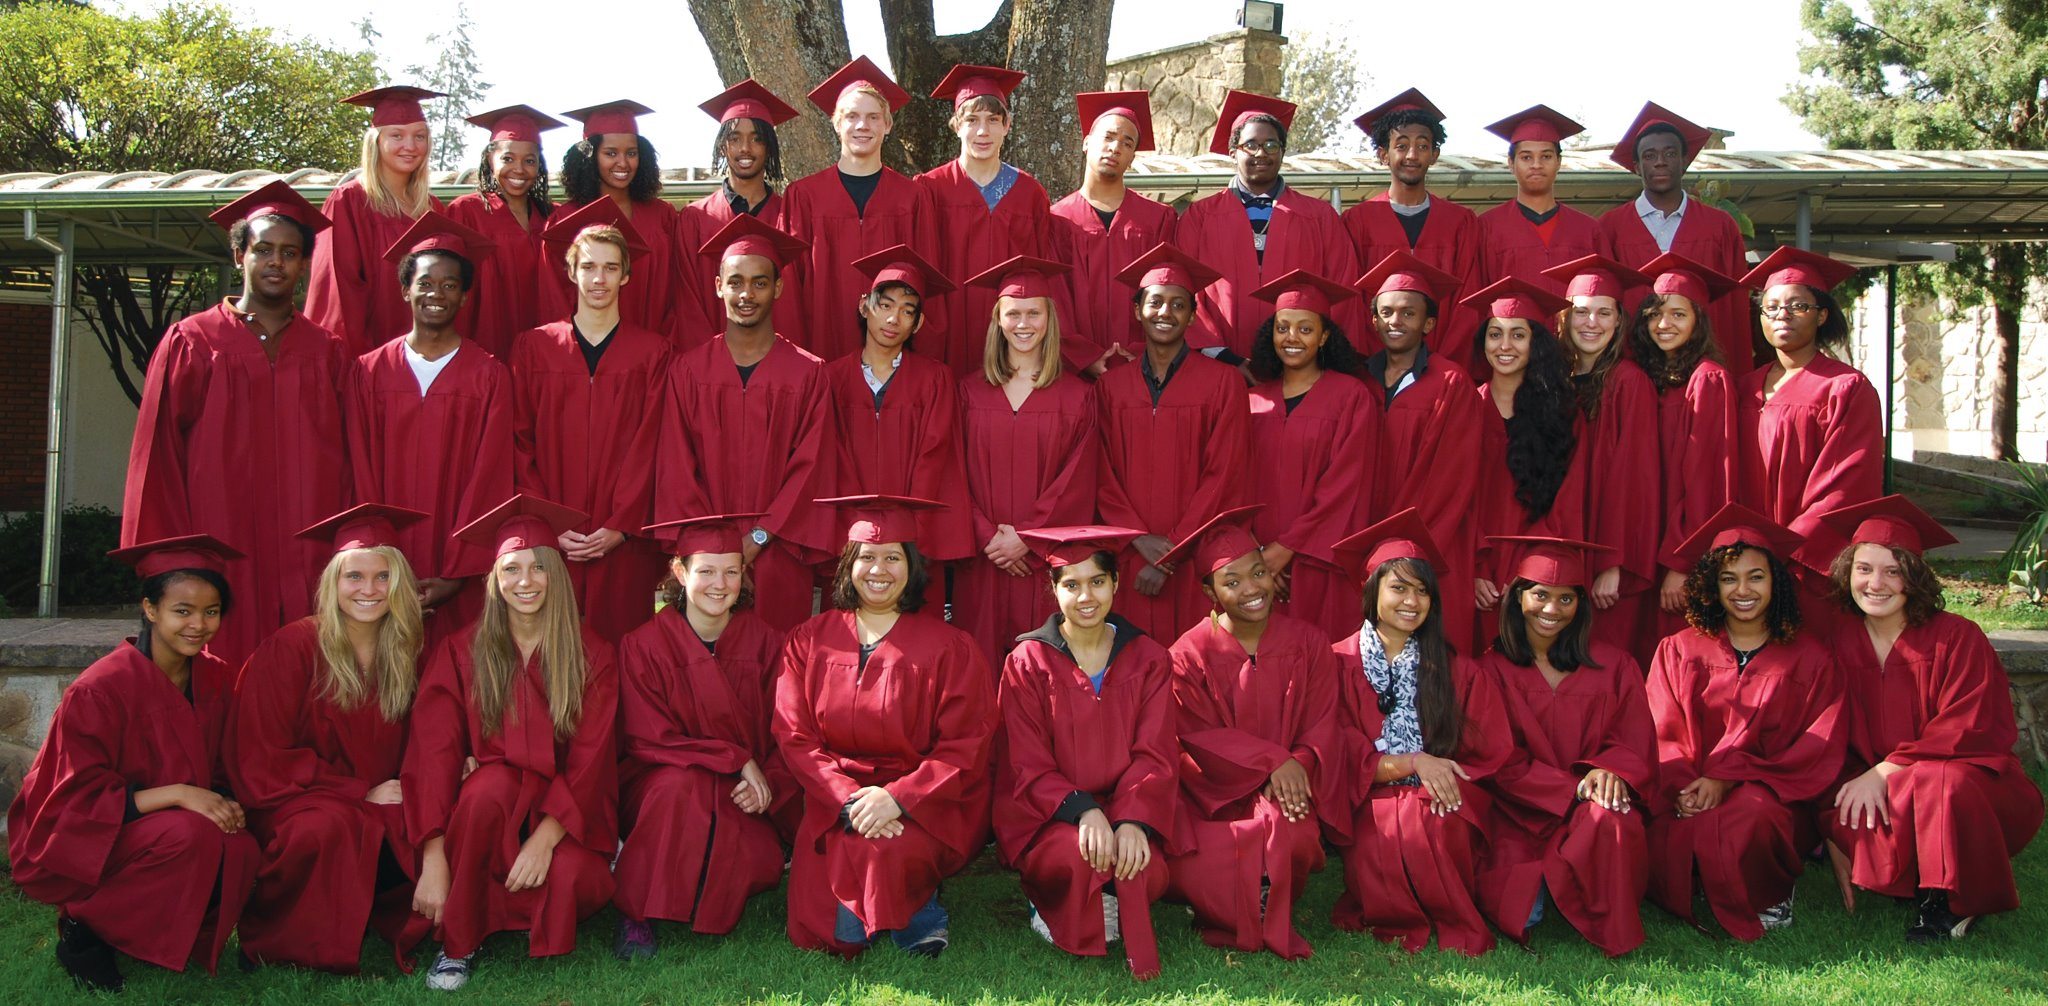 A photo of Yerro's high school graduation class before coming to York University.